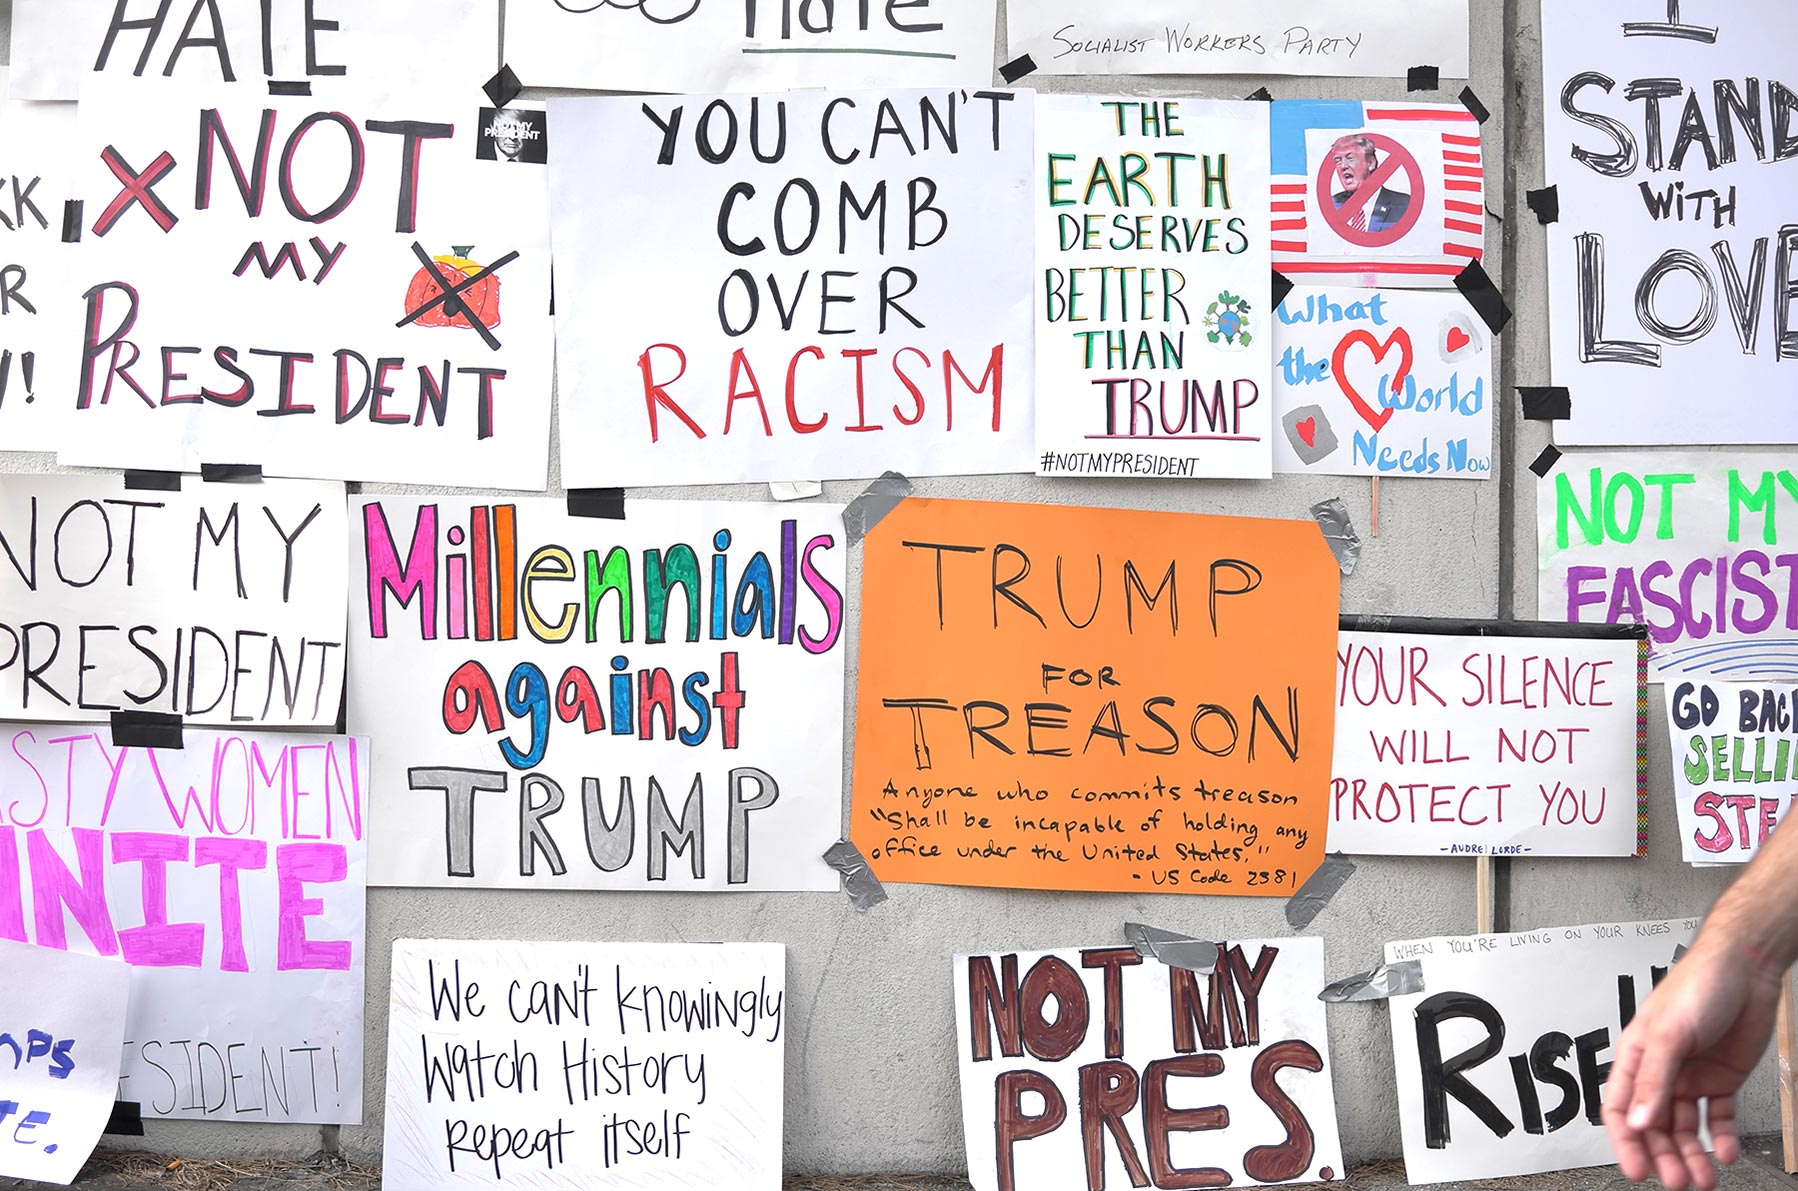 2016TrumpProtest6.jpg